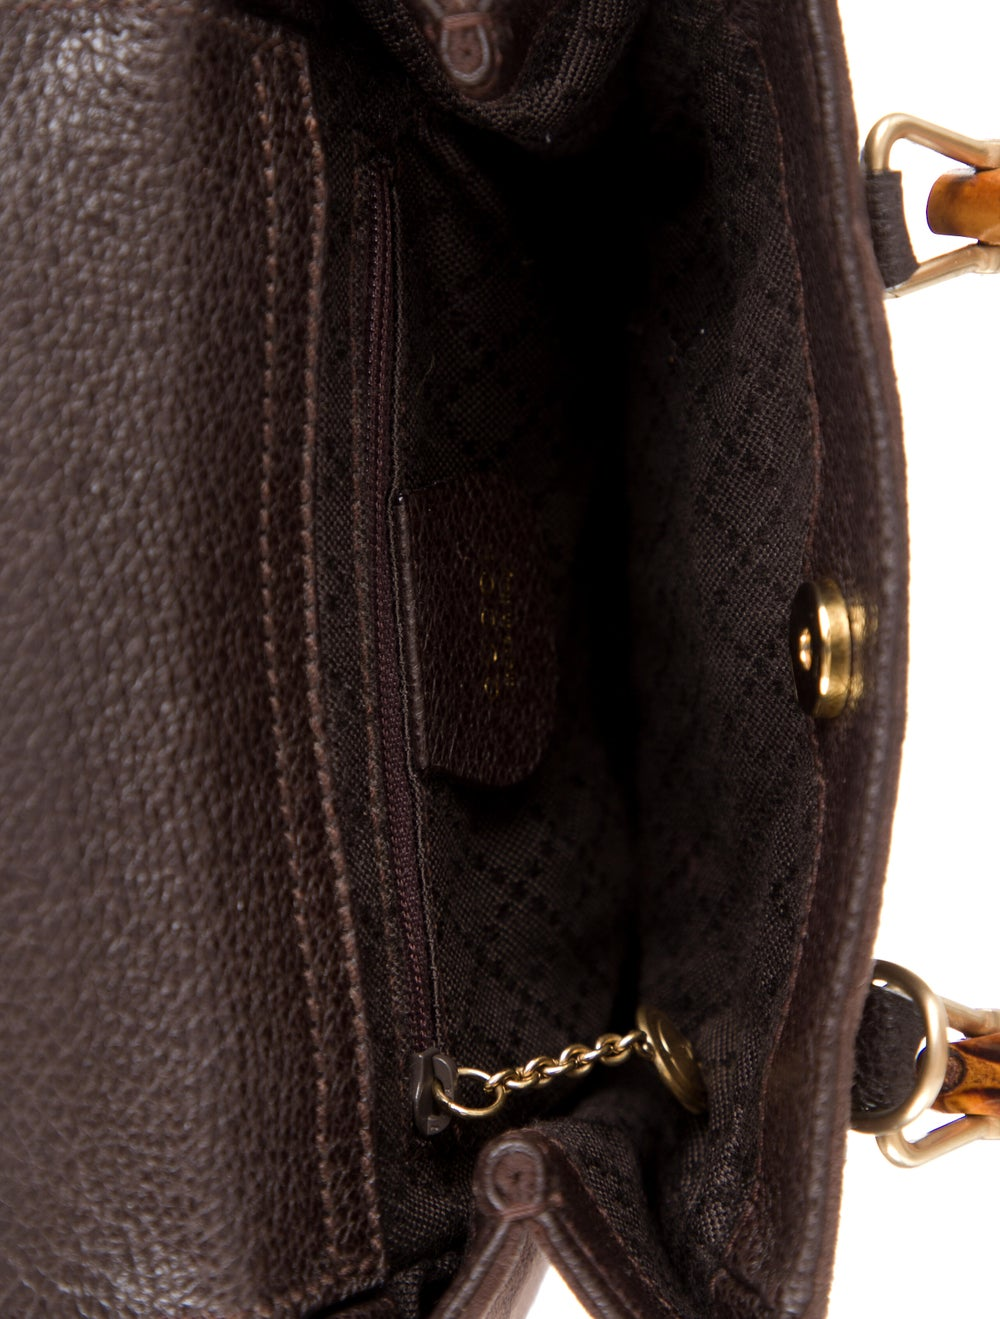 Gucci Vintage Bamboo Mini Suede Diana Bag Brown - image 5